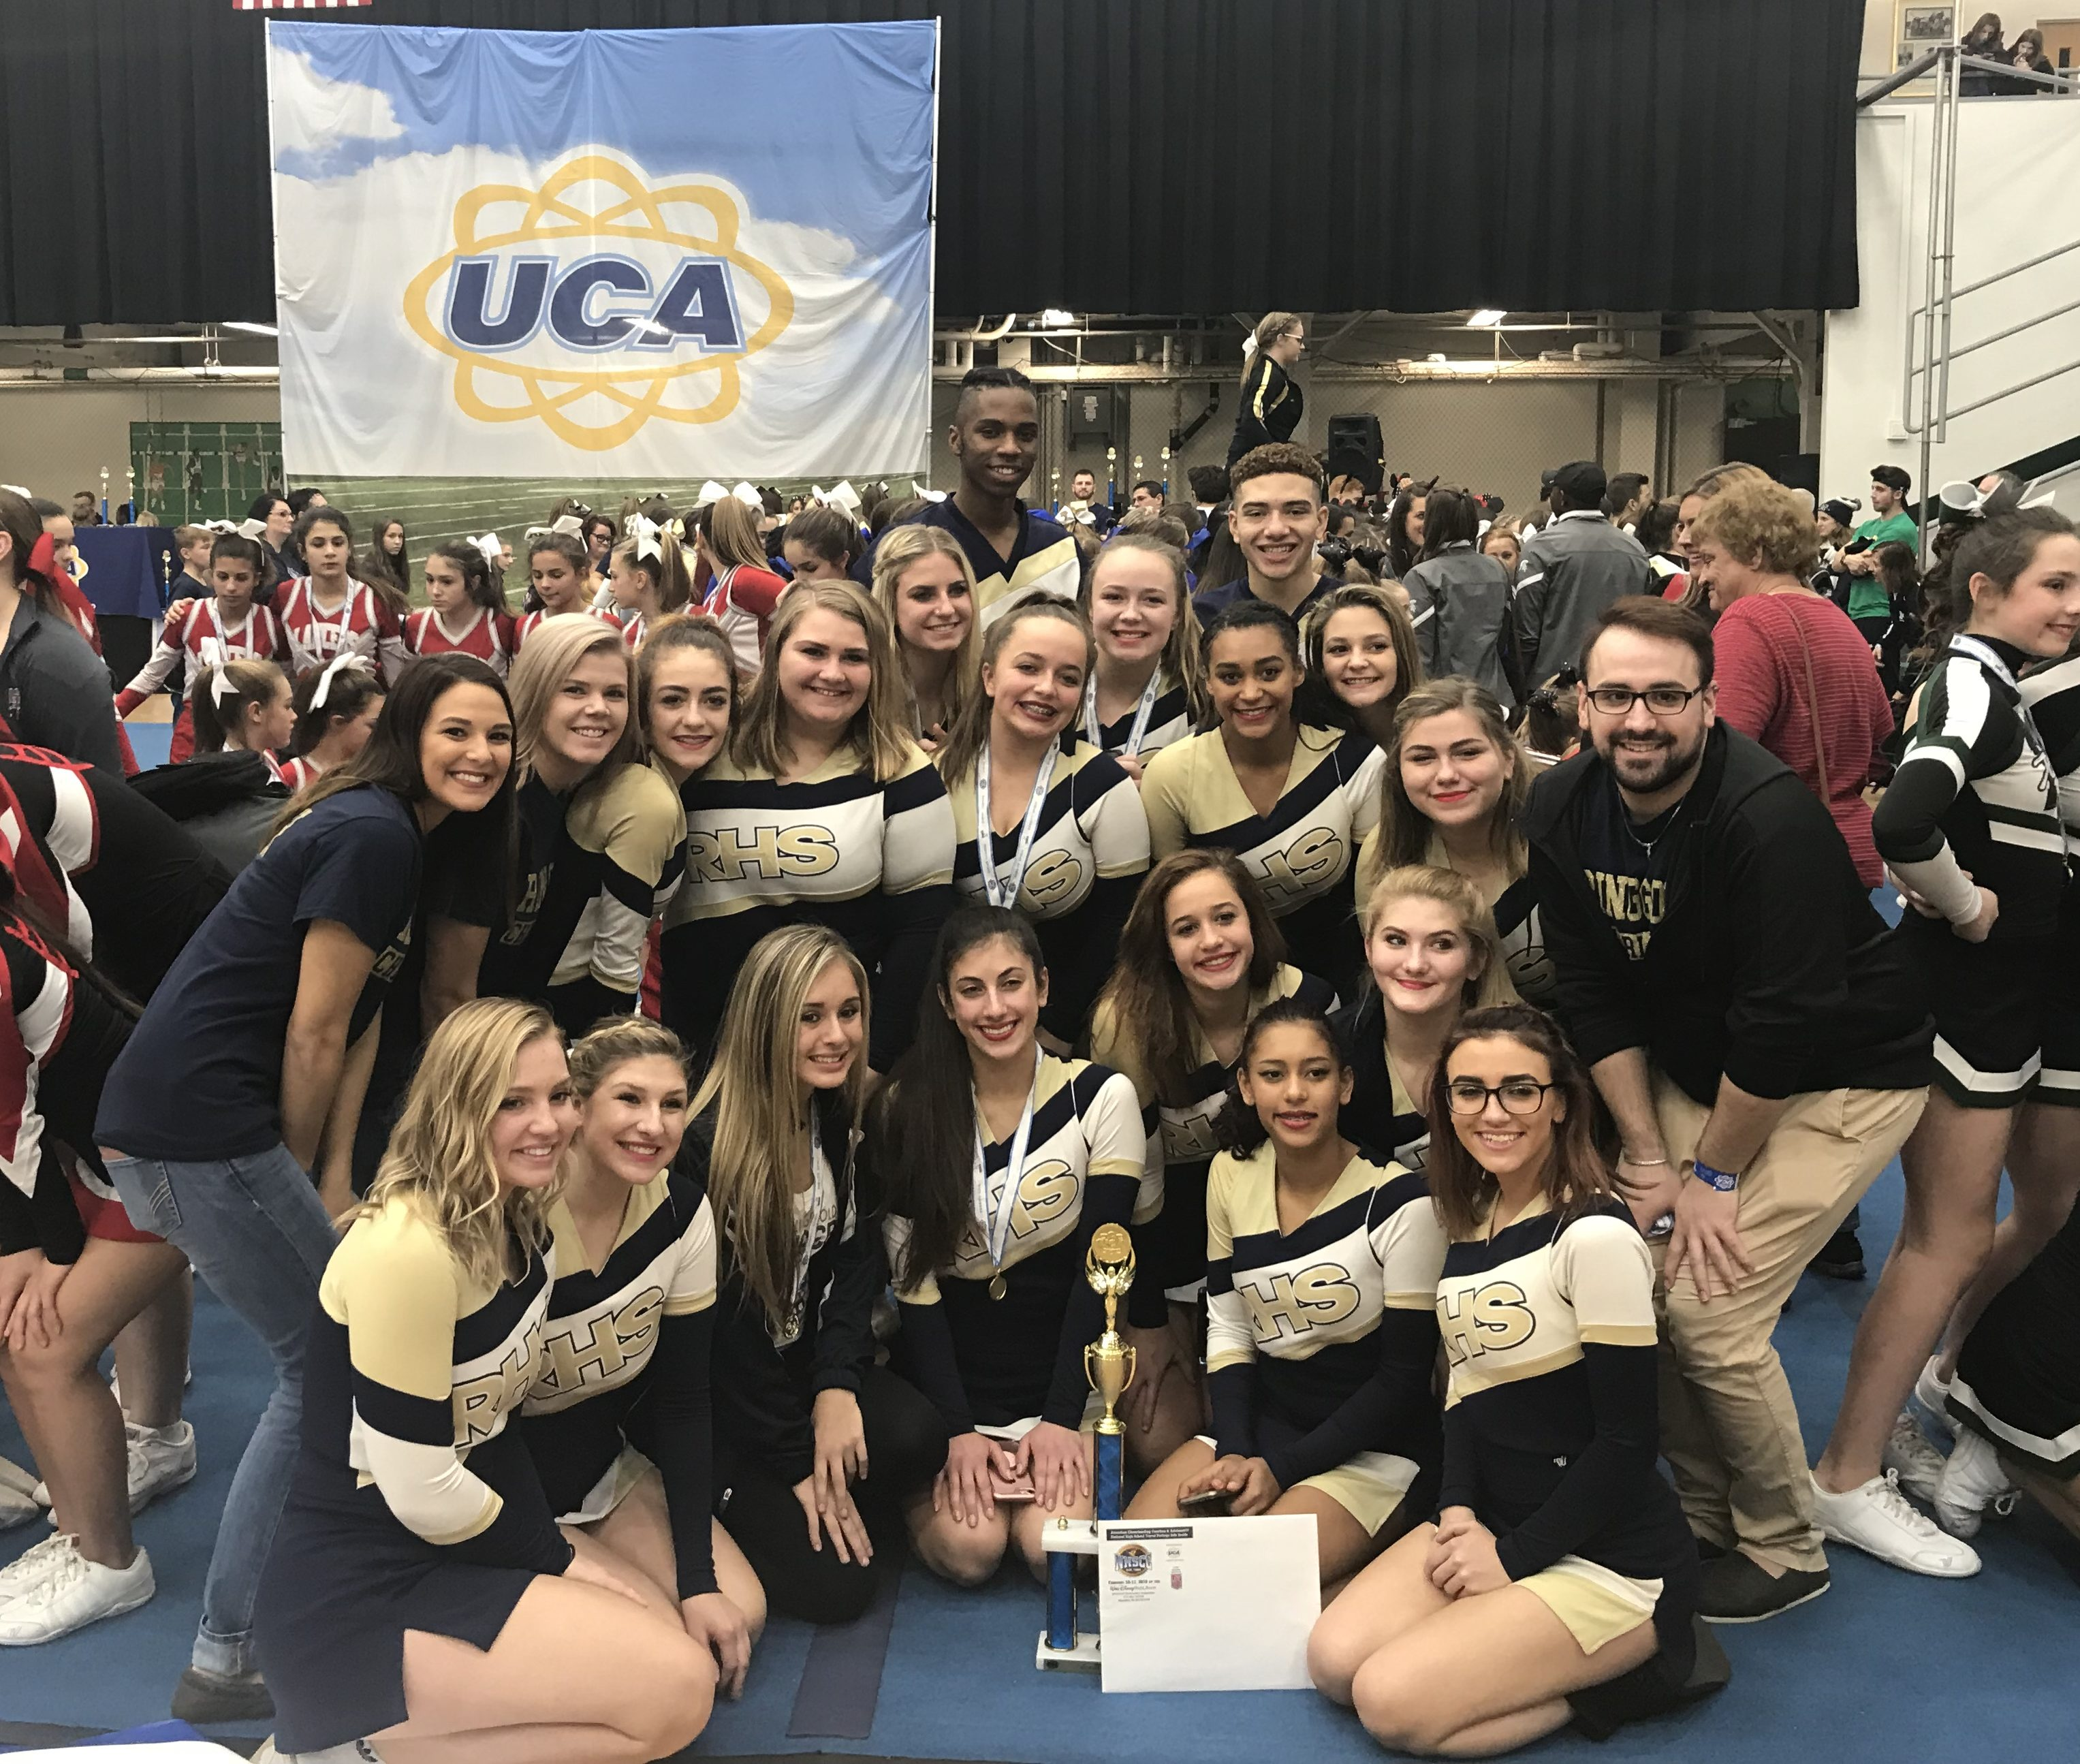 Competitive Spirit takes 2nd Place at Slippery Rock